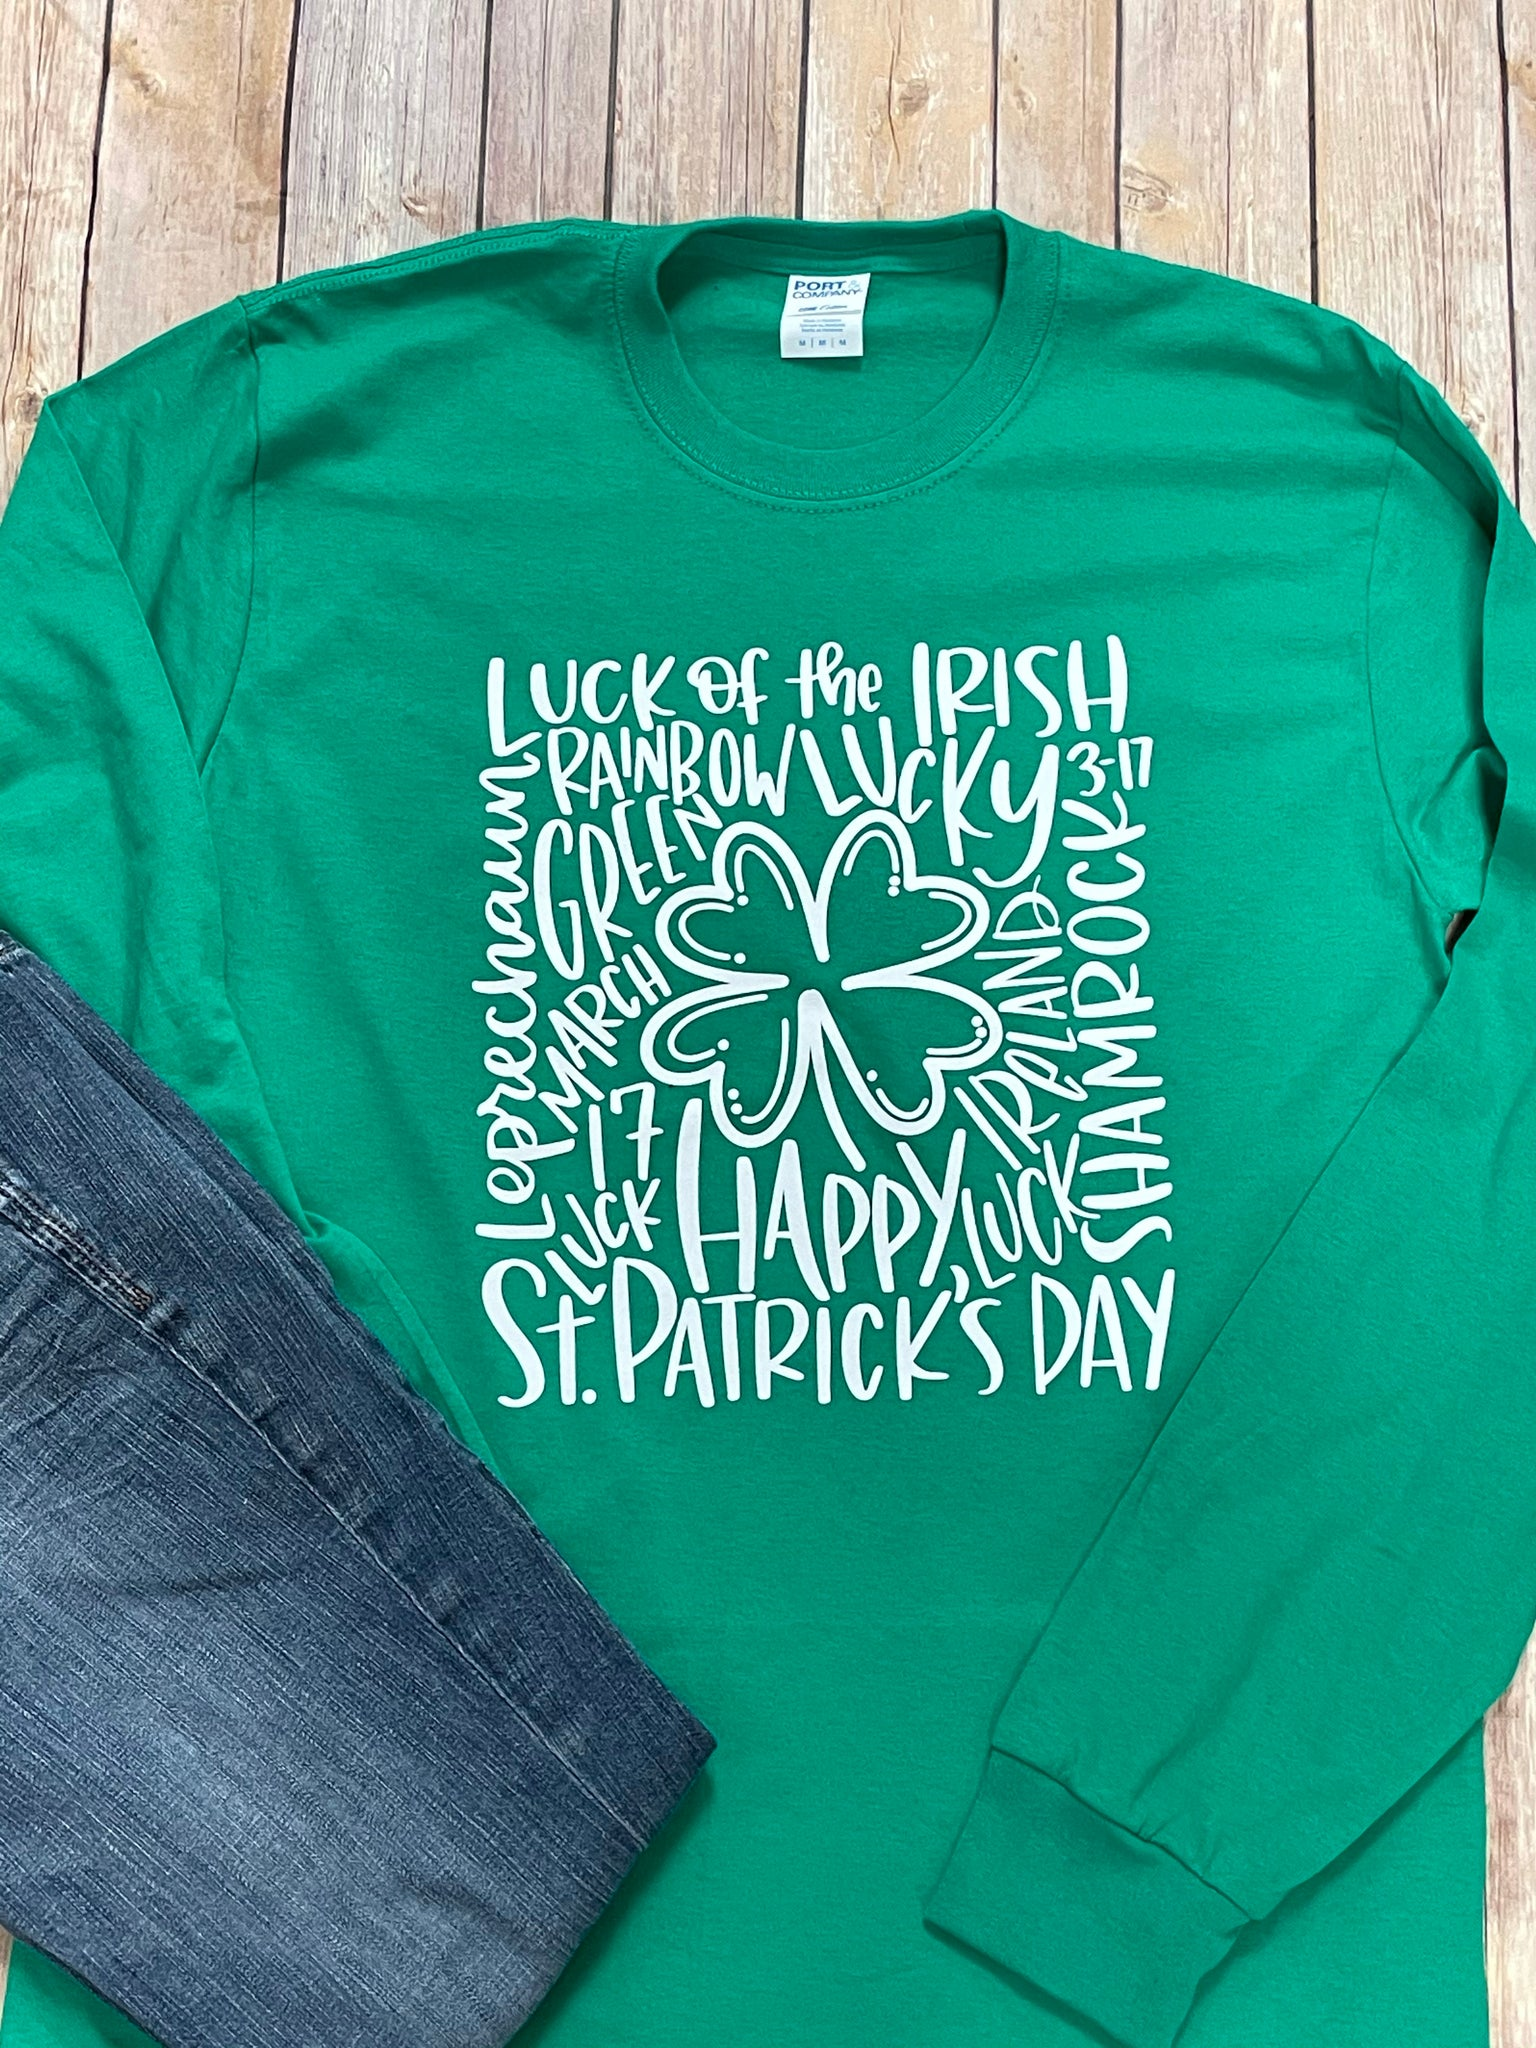 St. Patrick's Day Long Sleeve Tshirt